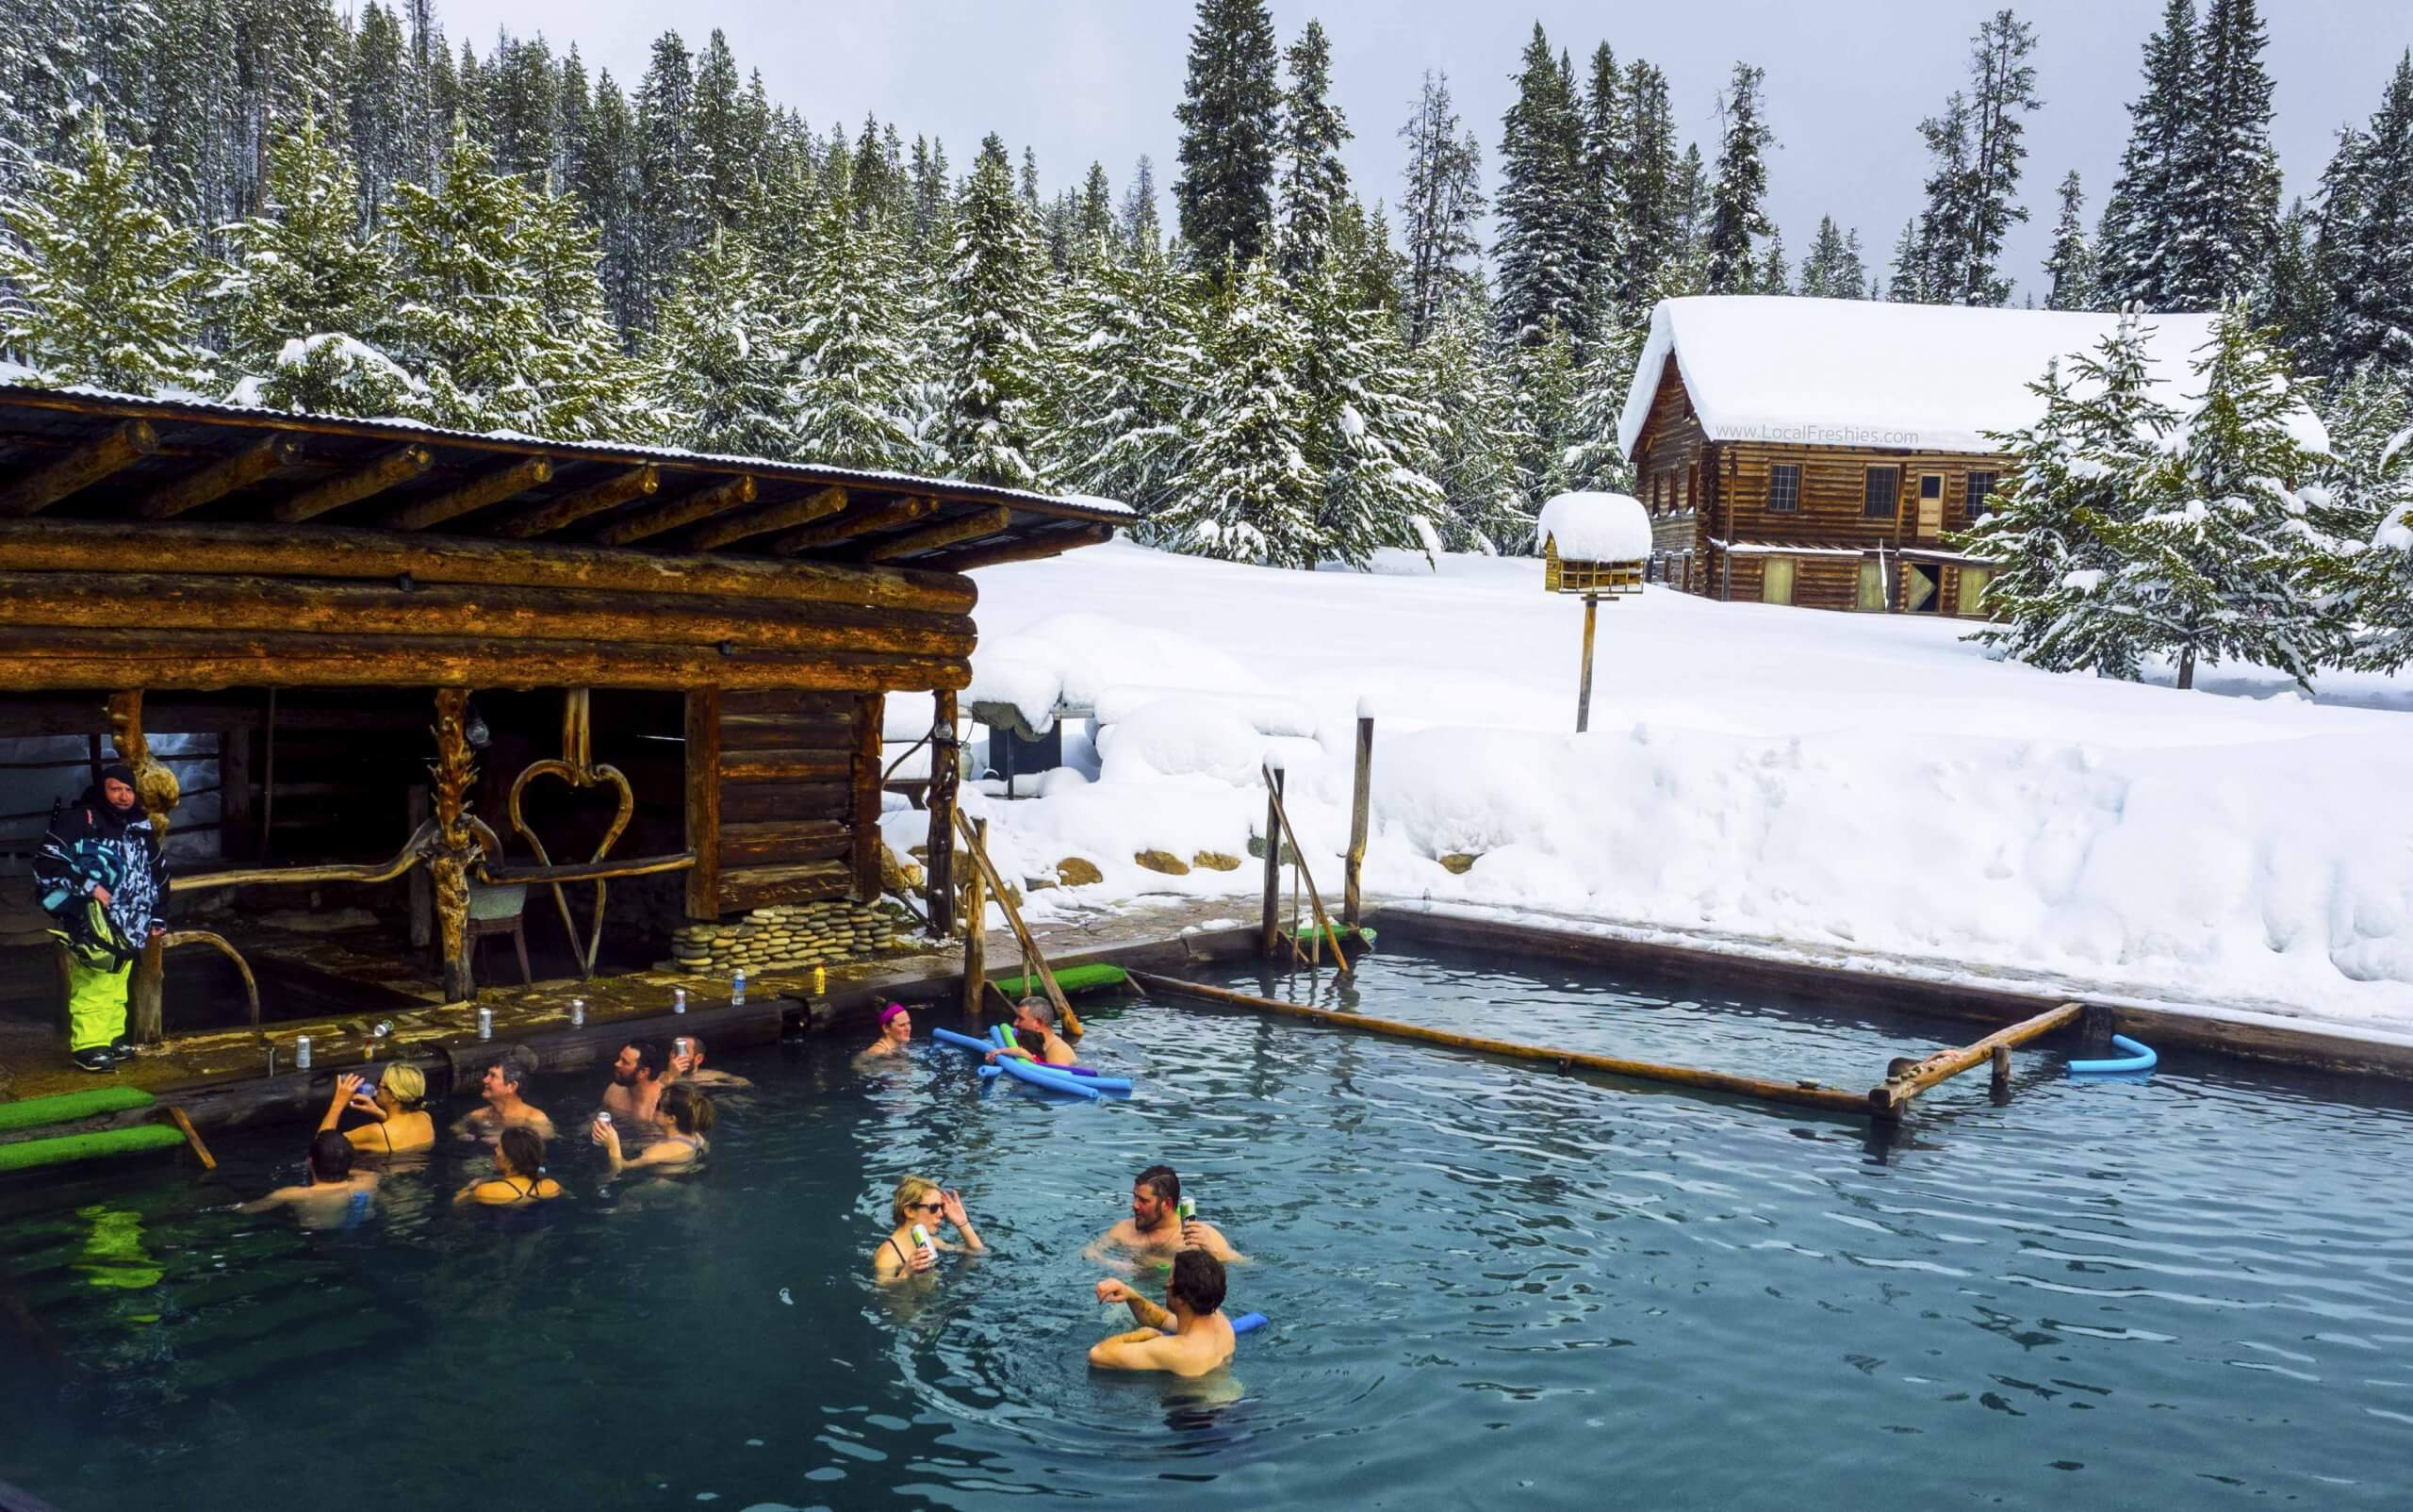 People sitting a hot pool surrounded by snow.